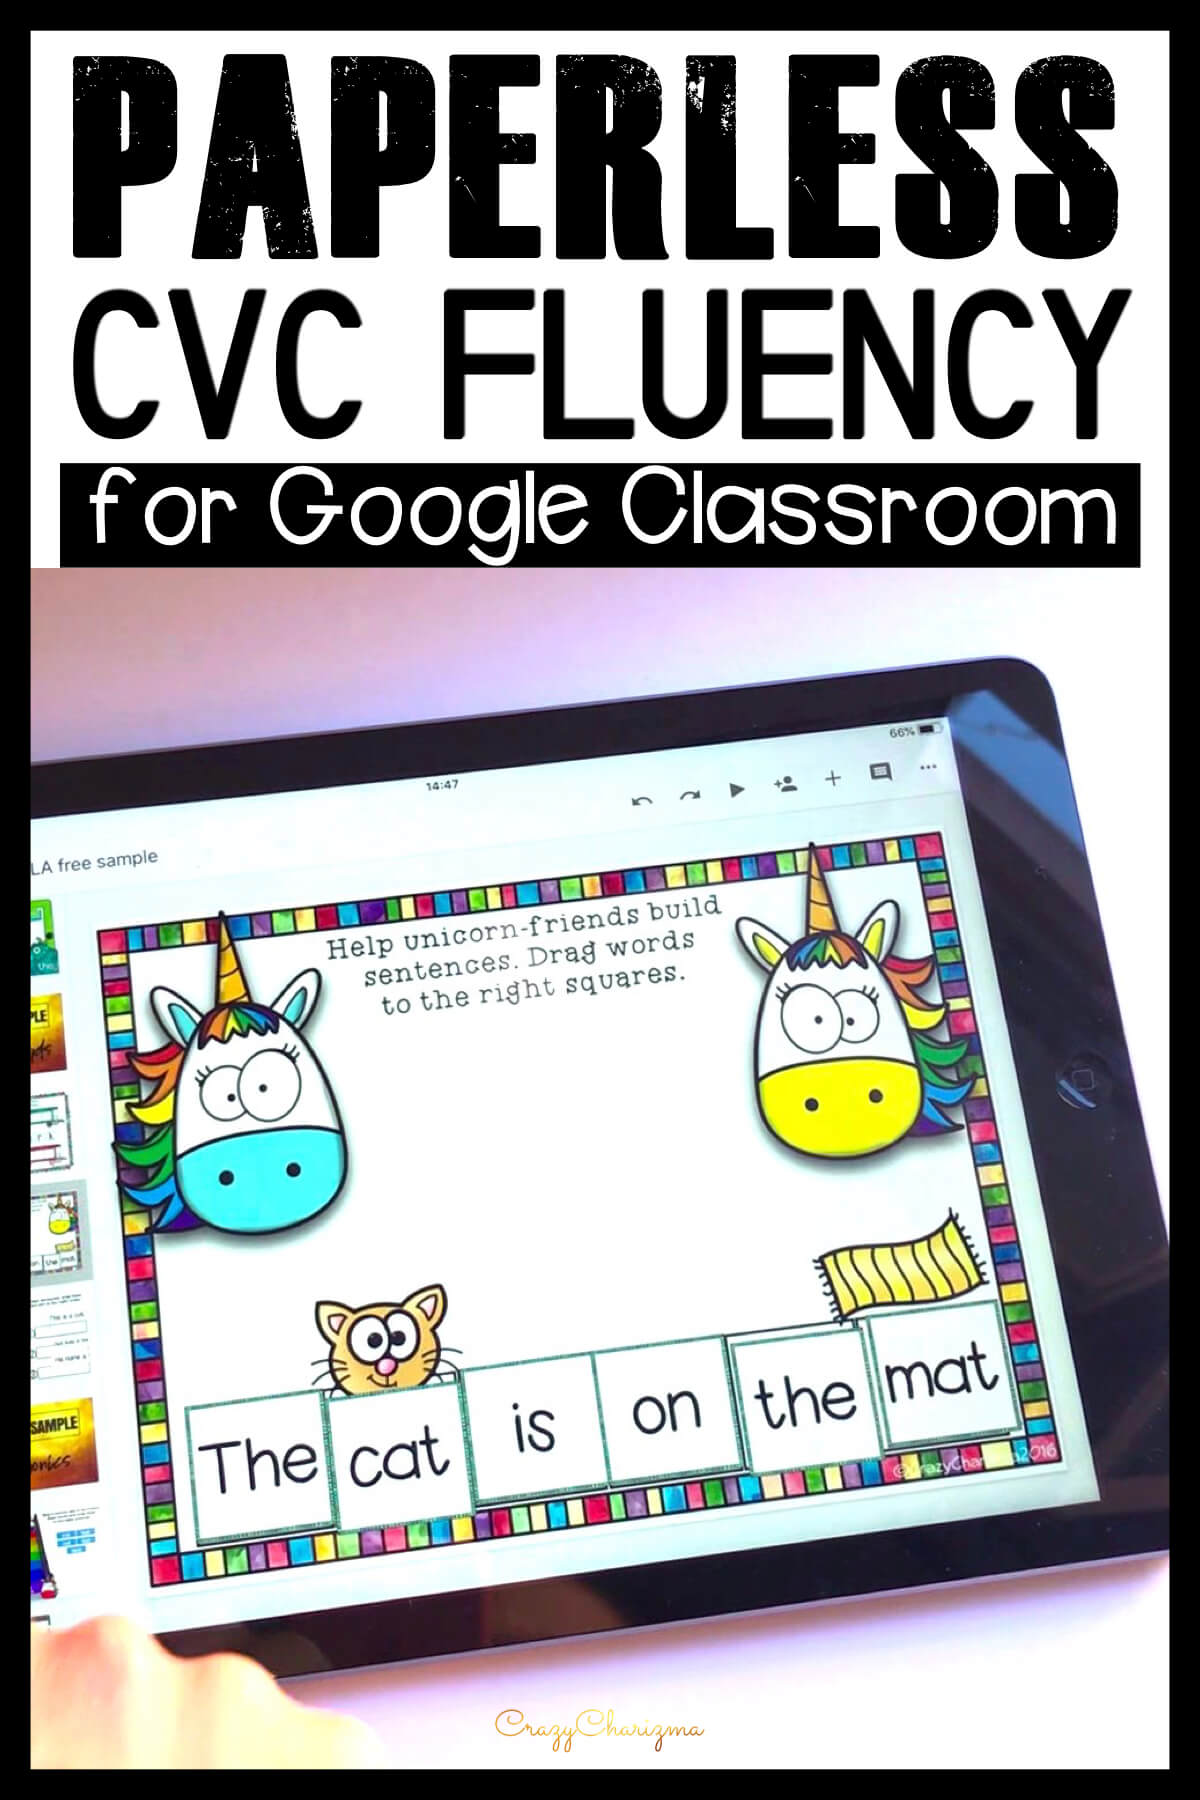 Google Classroom Activities for Kindergarten | CVC sentence fluency: Want to engage kids with CVC word sentences? Try activities for Google Classroom in kindergarten. With images as visual help, students will build sentences and read them aloud in an engaging way!